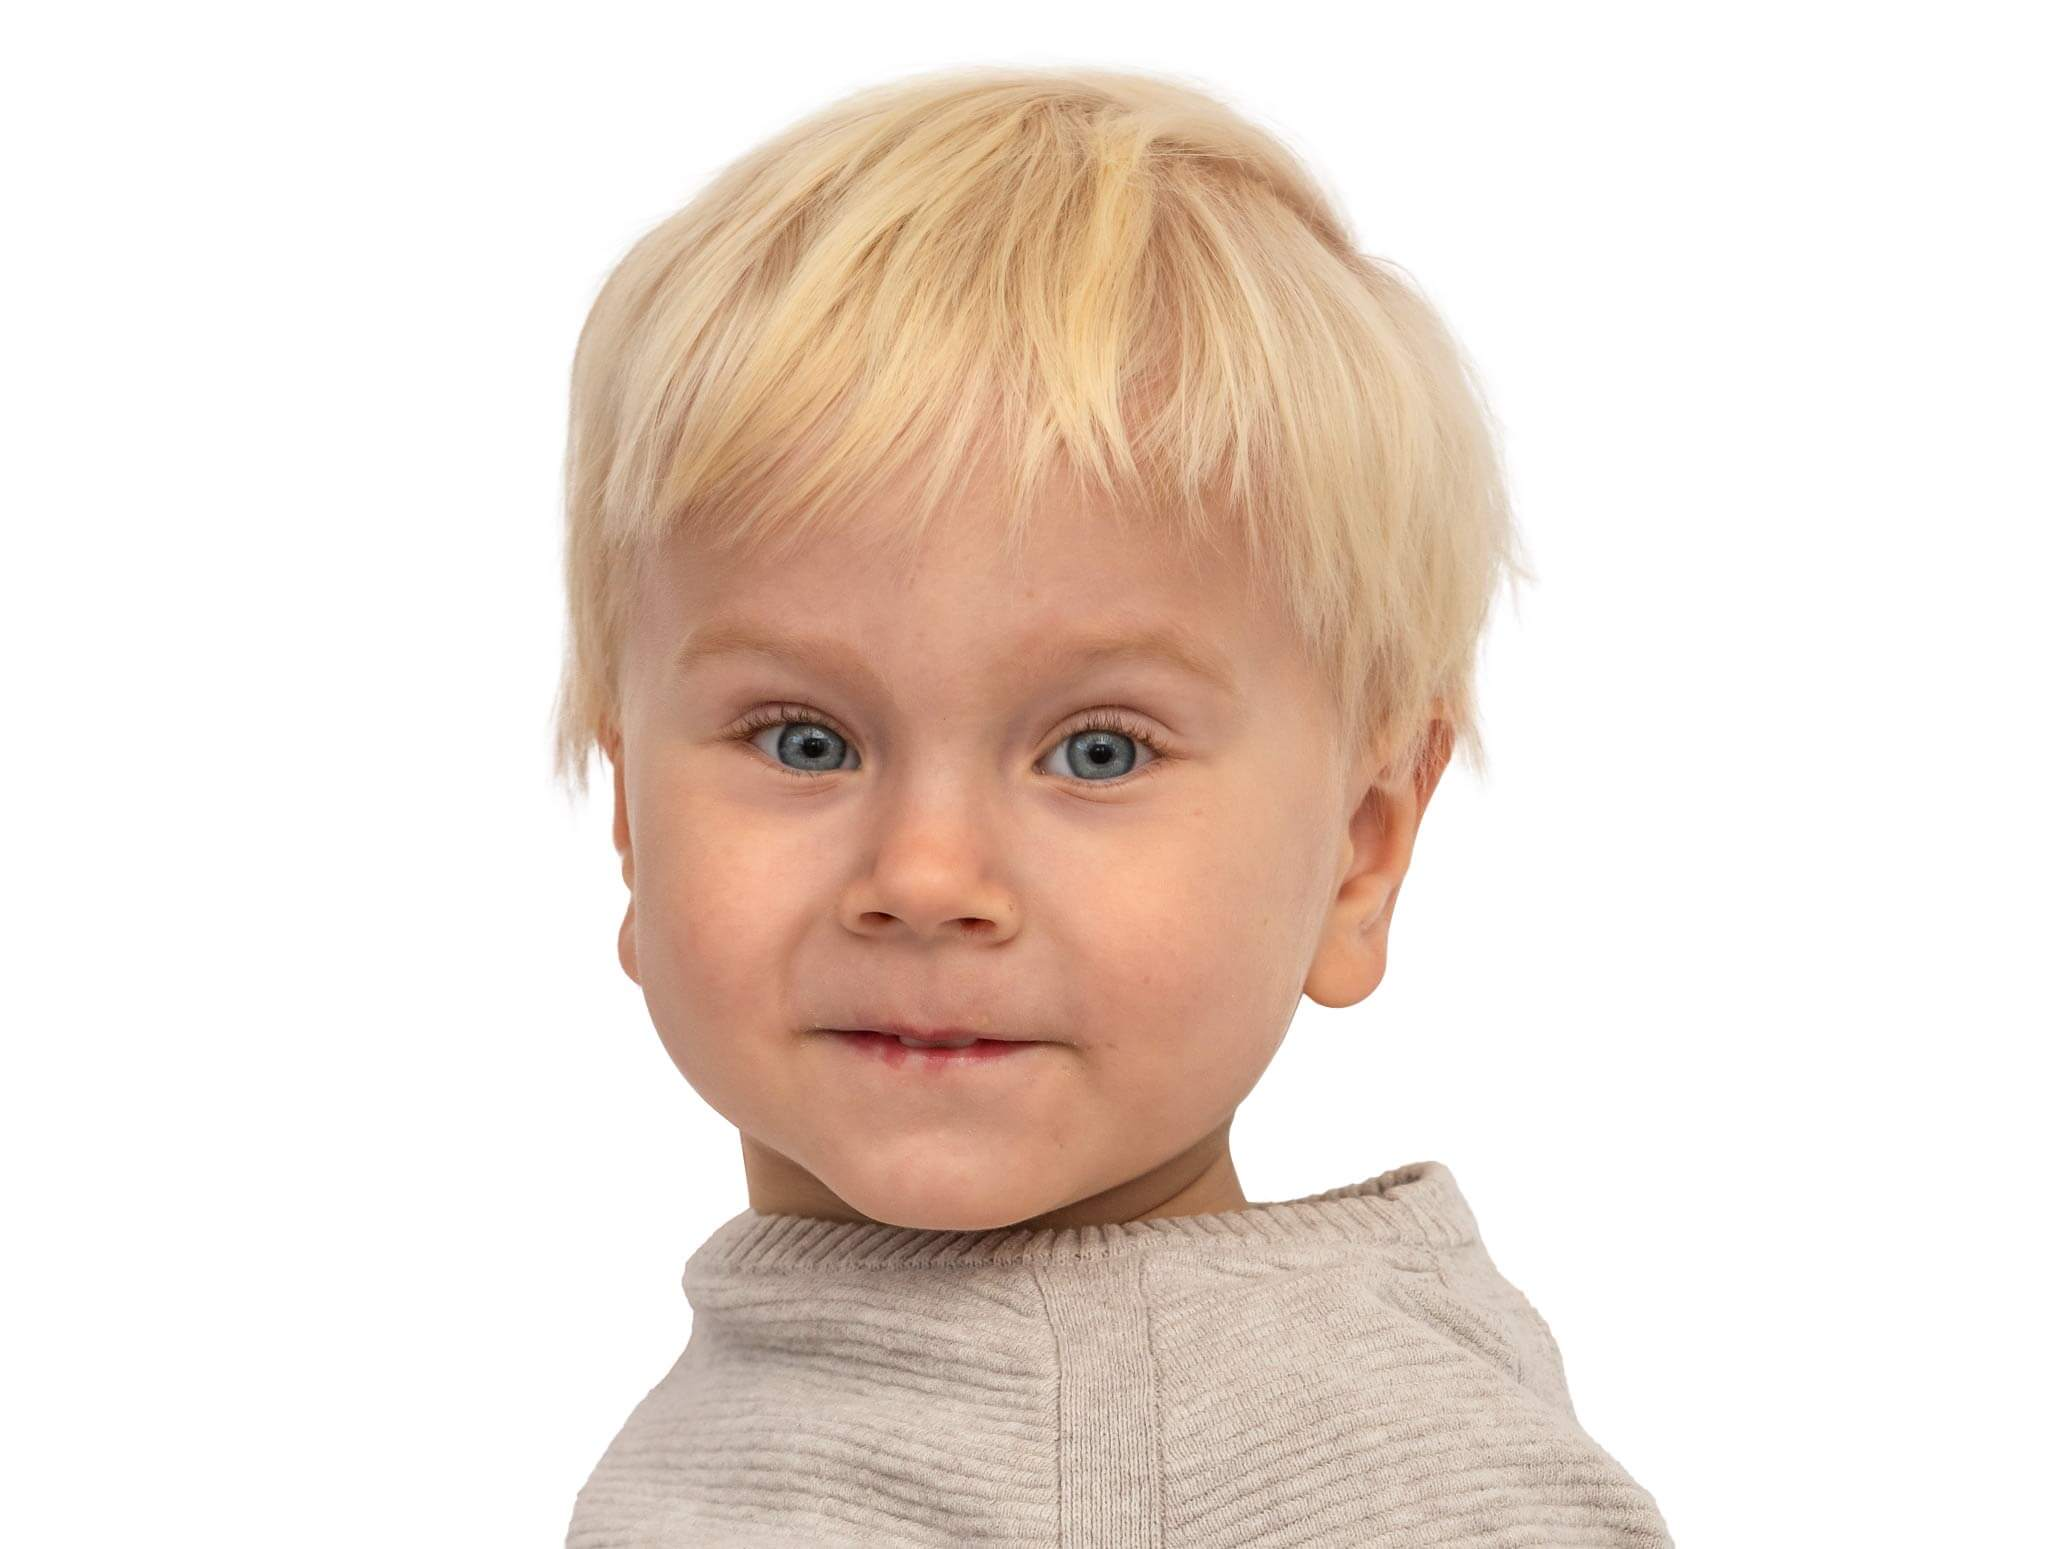 toddler boy with autism looking at camera slightly smiling